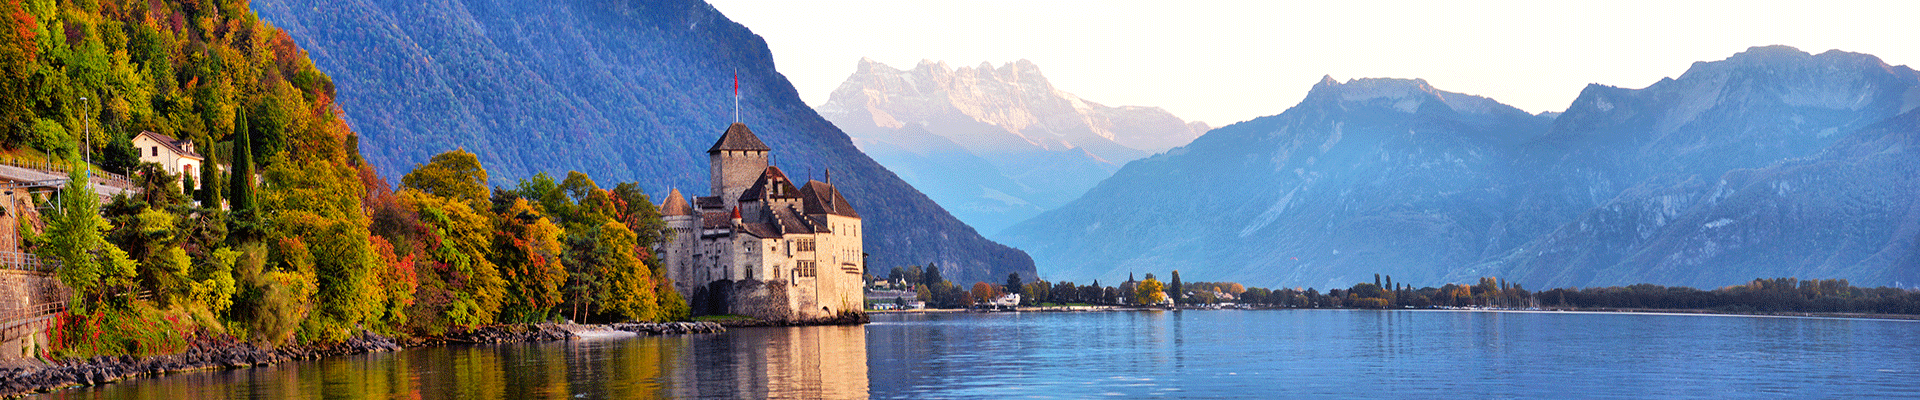 Castle Chillon